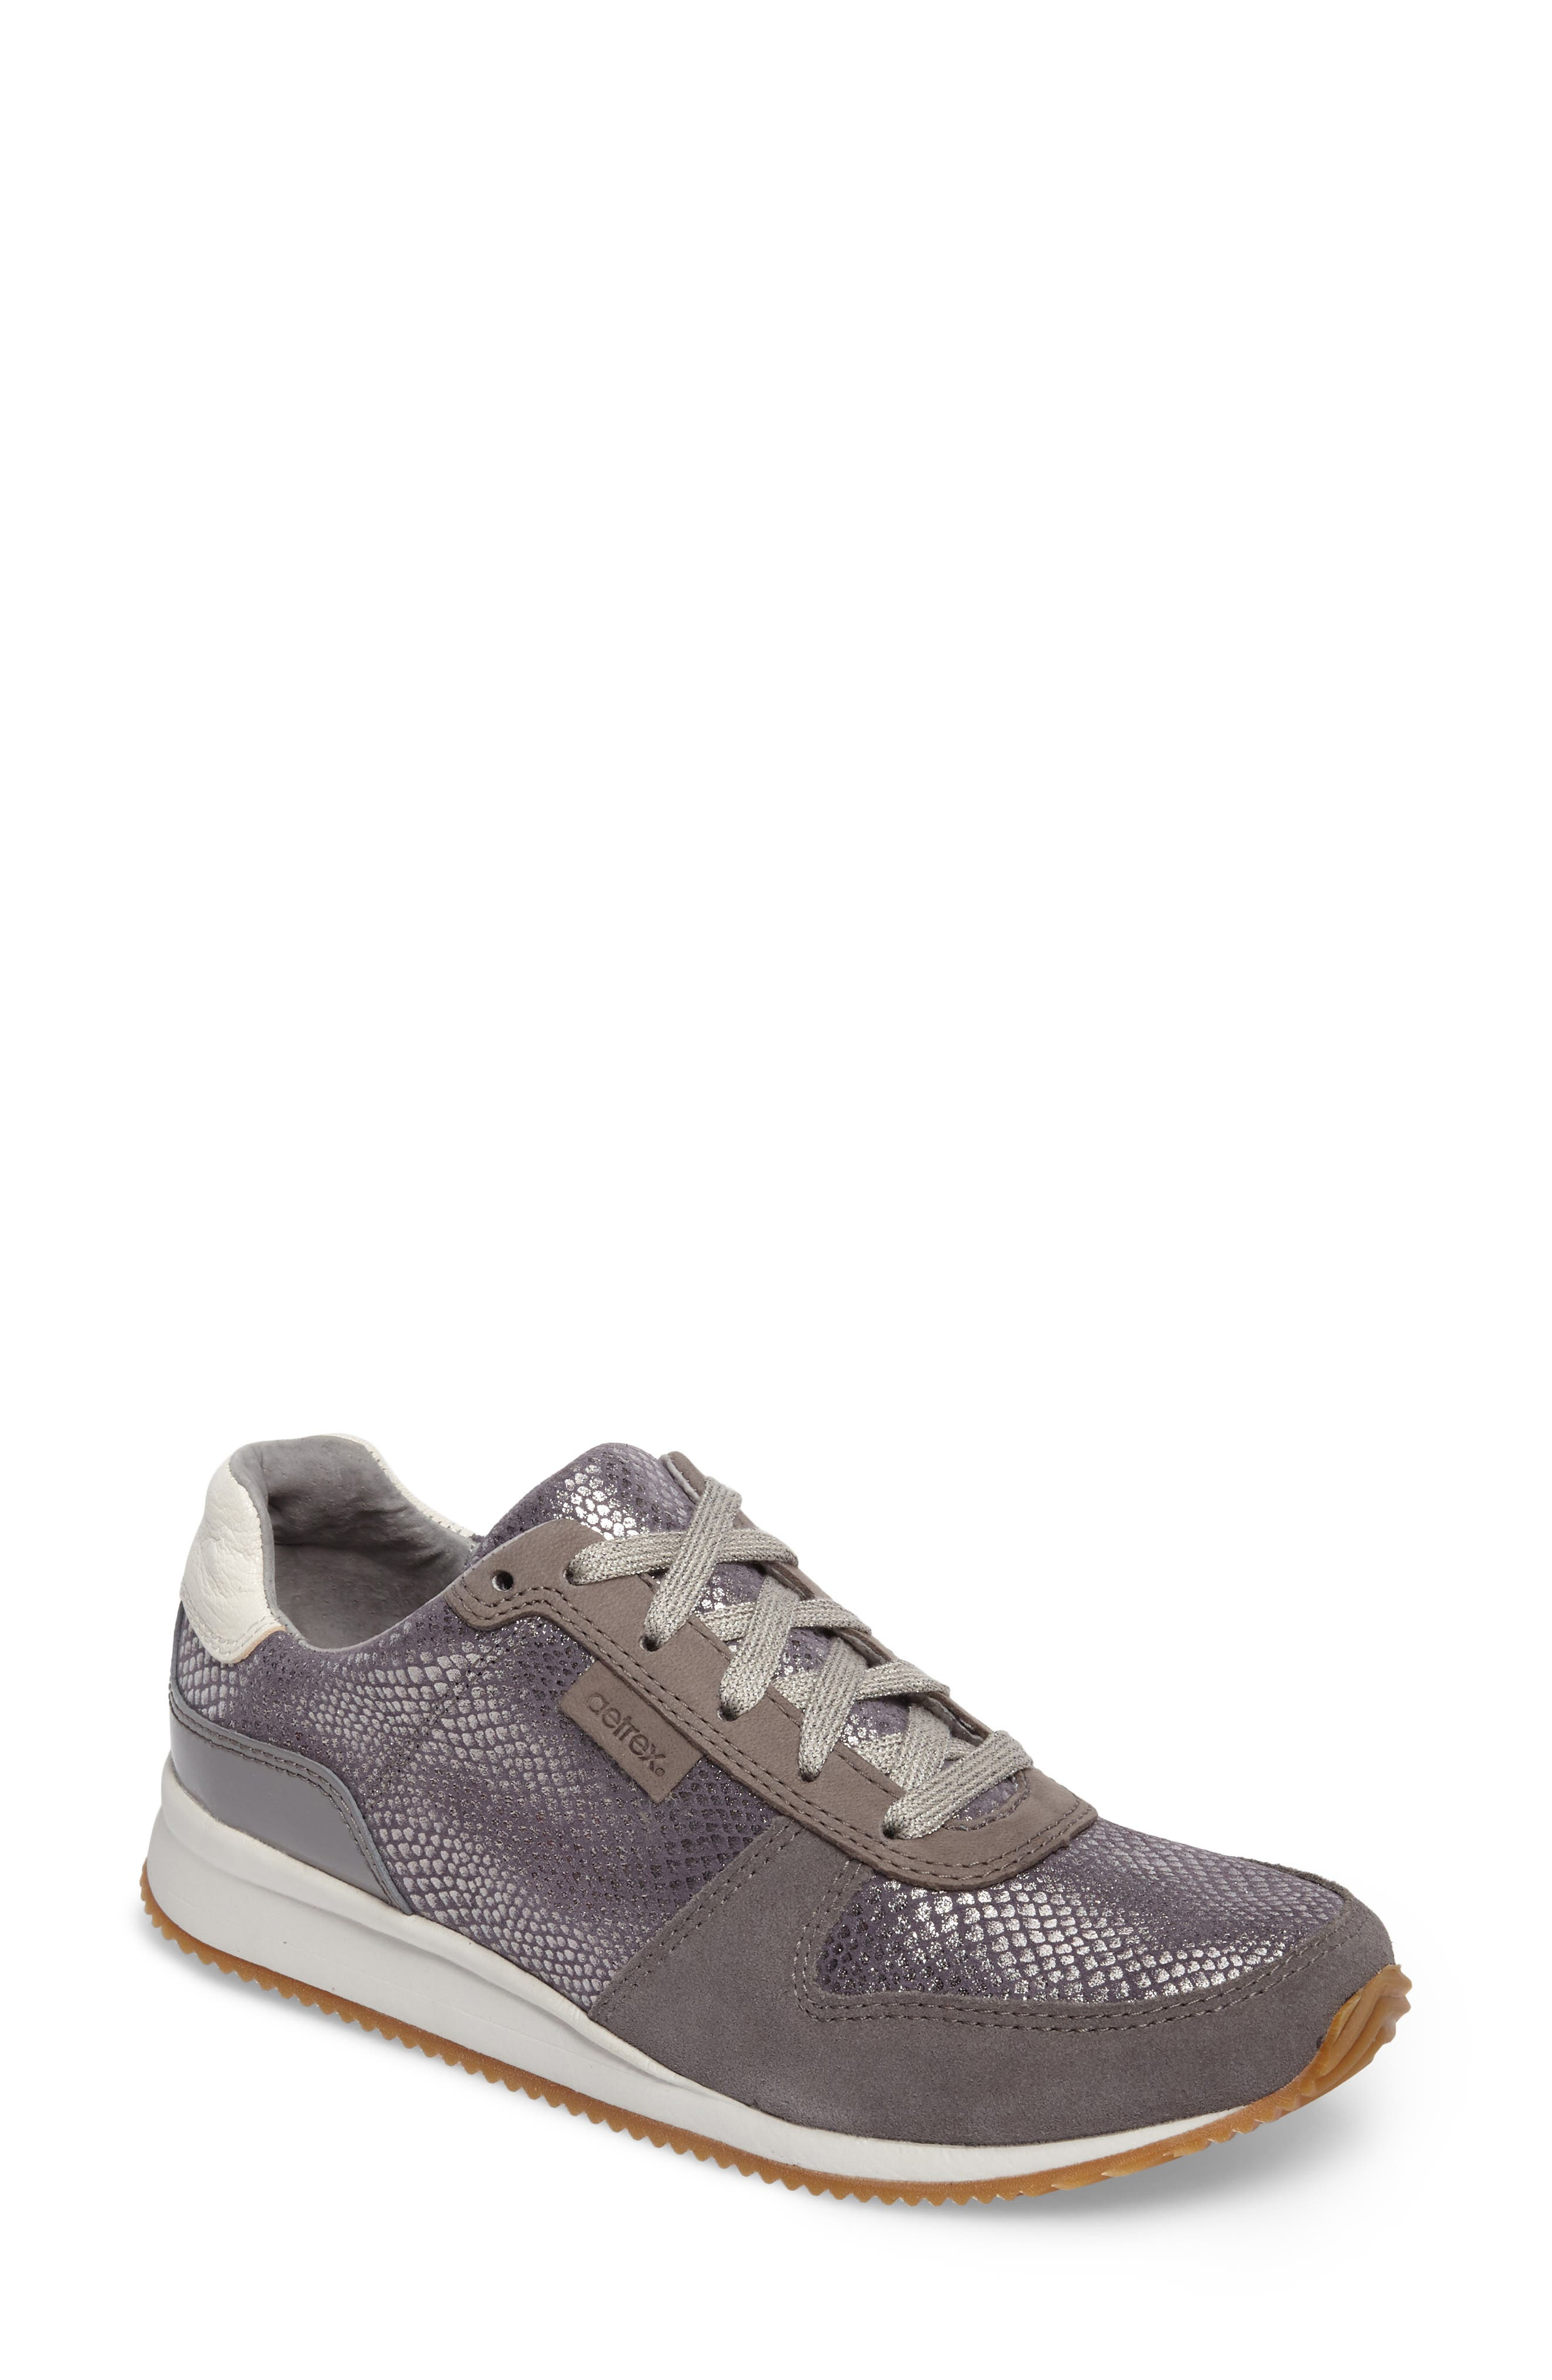 Daphne Sneaker,                         Main,                         color, Grey Leather